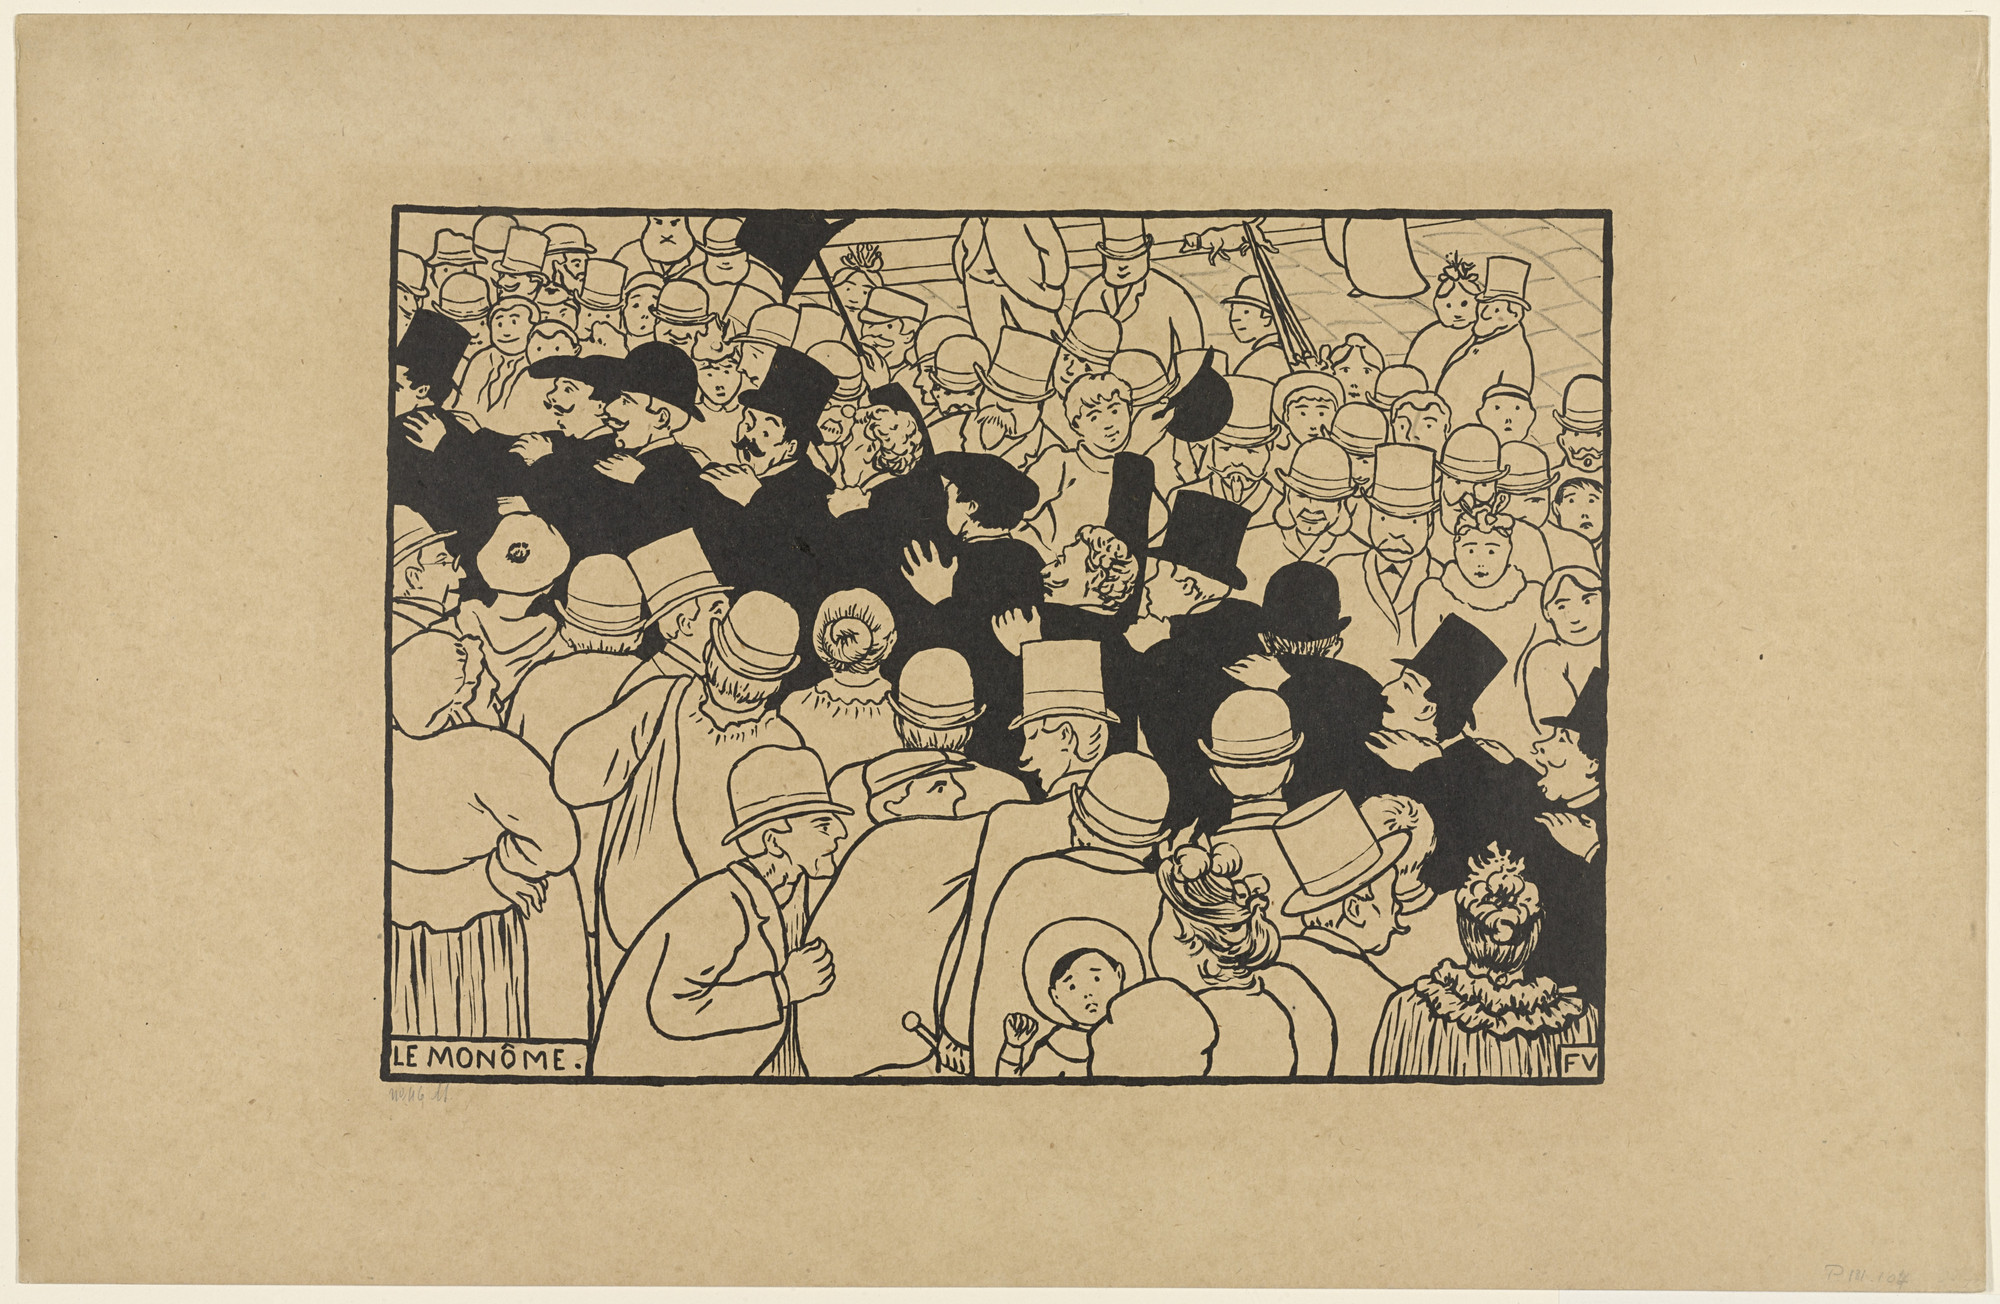 Félix Vallotton. Parading Through the Streets in Single File (Le Monôme) from the series Paris Intense. 1893